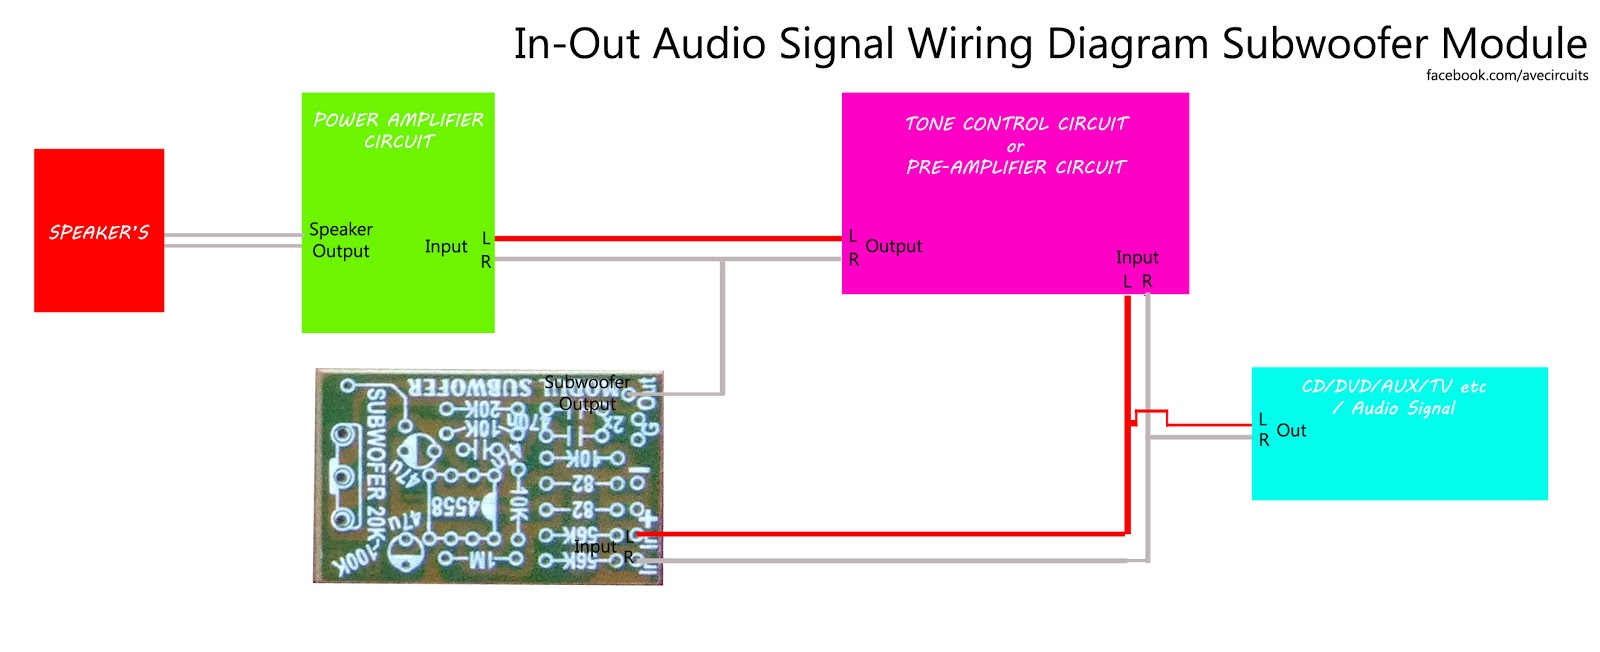 Subwoofer Module Amplifier Using 4558 With Pcb Electronic Circuit Wiring Diagram For Subwoofers